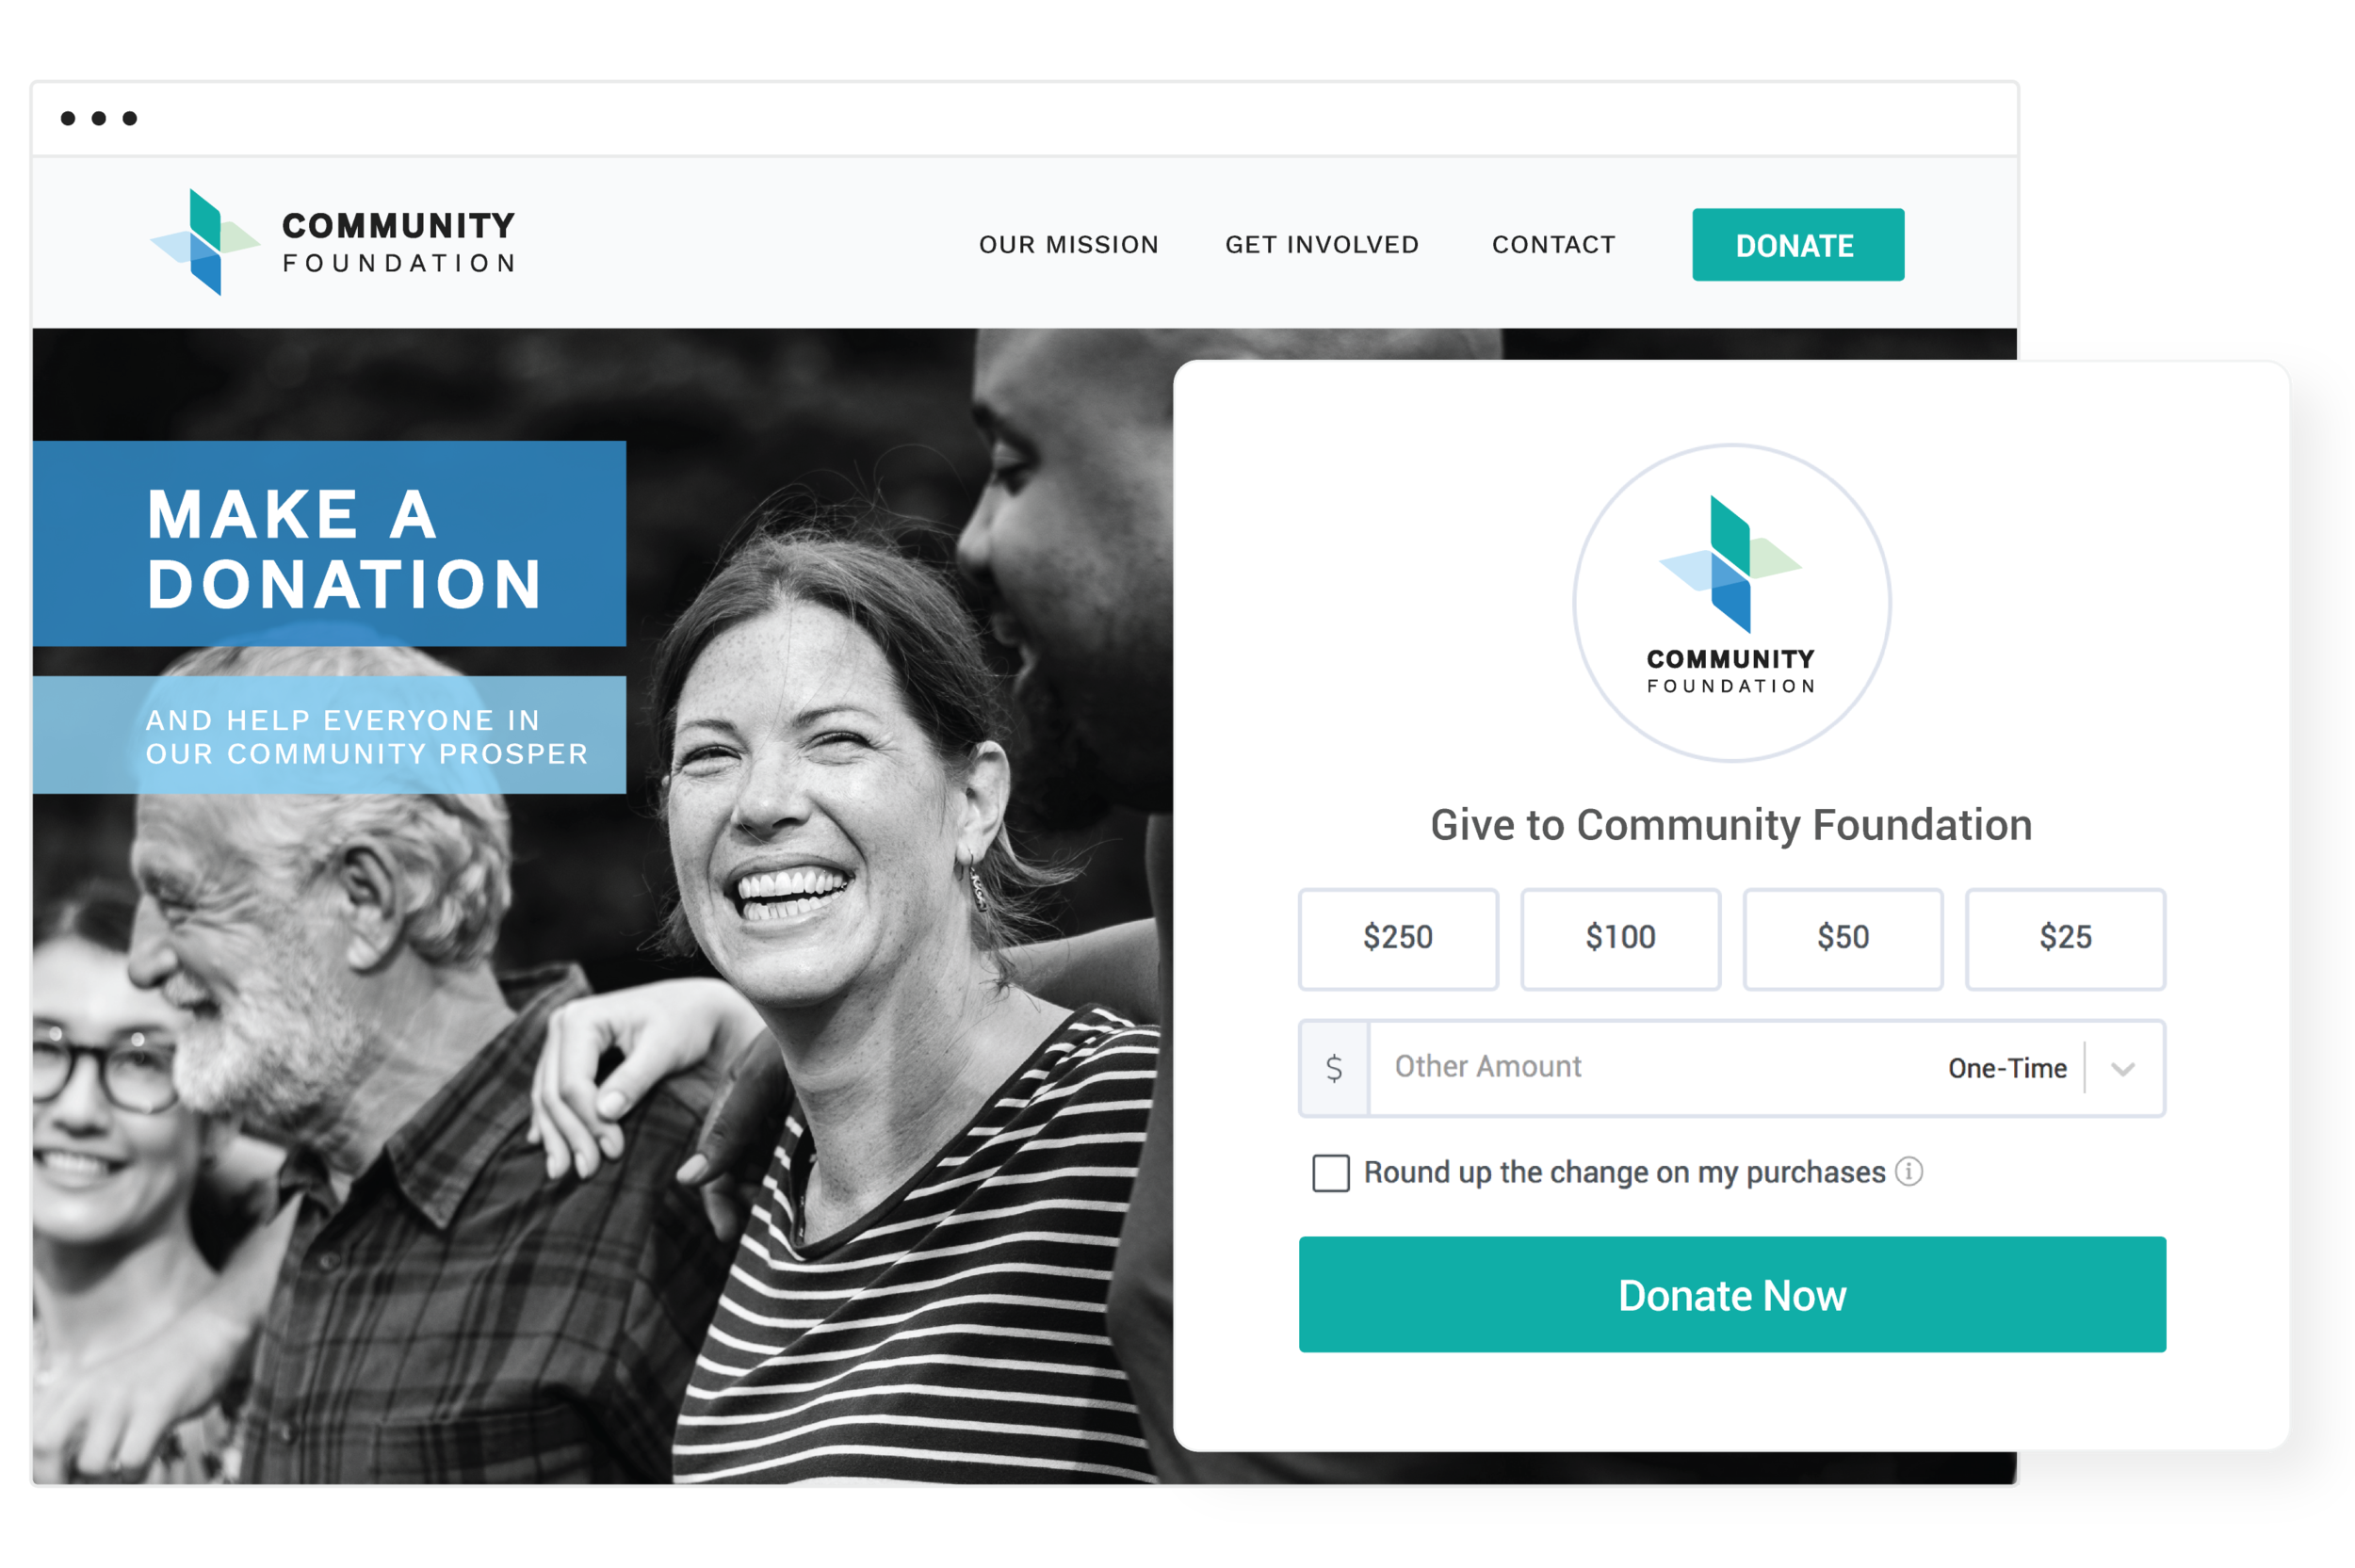 Collect donations on your website - Convert those frequent visitors into supporters with a donation form that's easy to embed anywhere on your site. Our form works on modern website platforms like Squarespace, Wordpress and Wix.